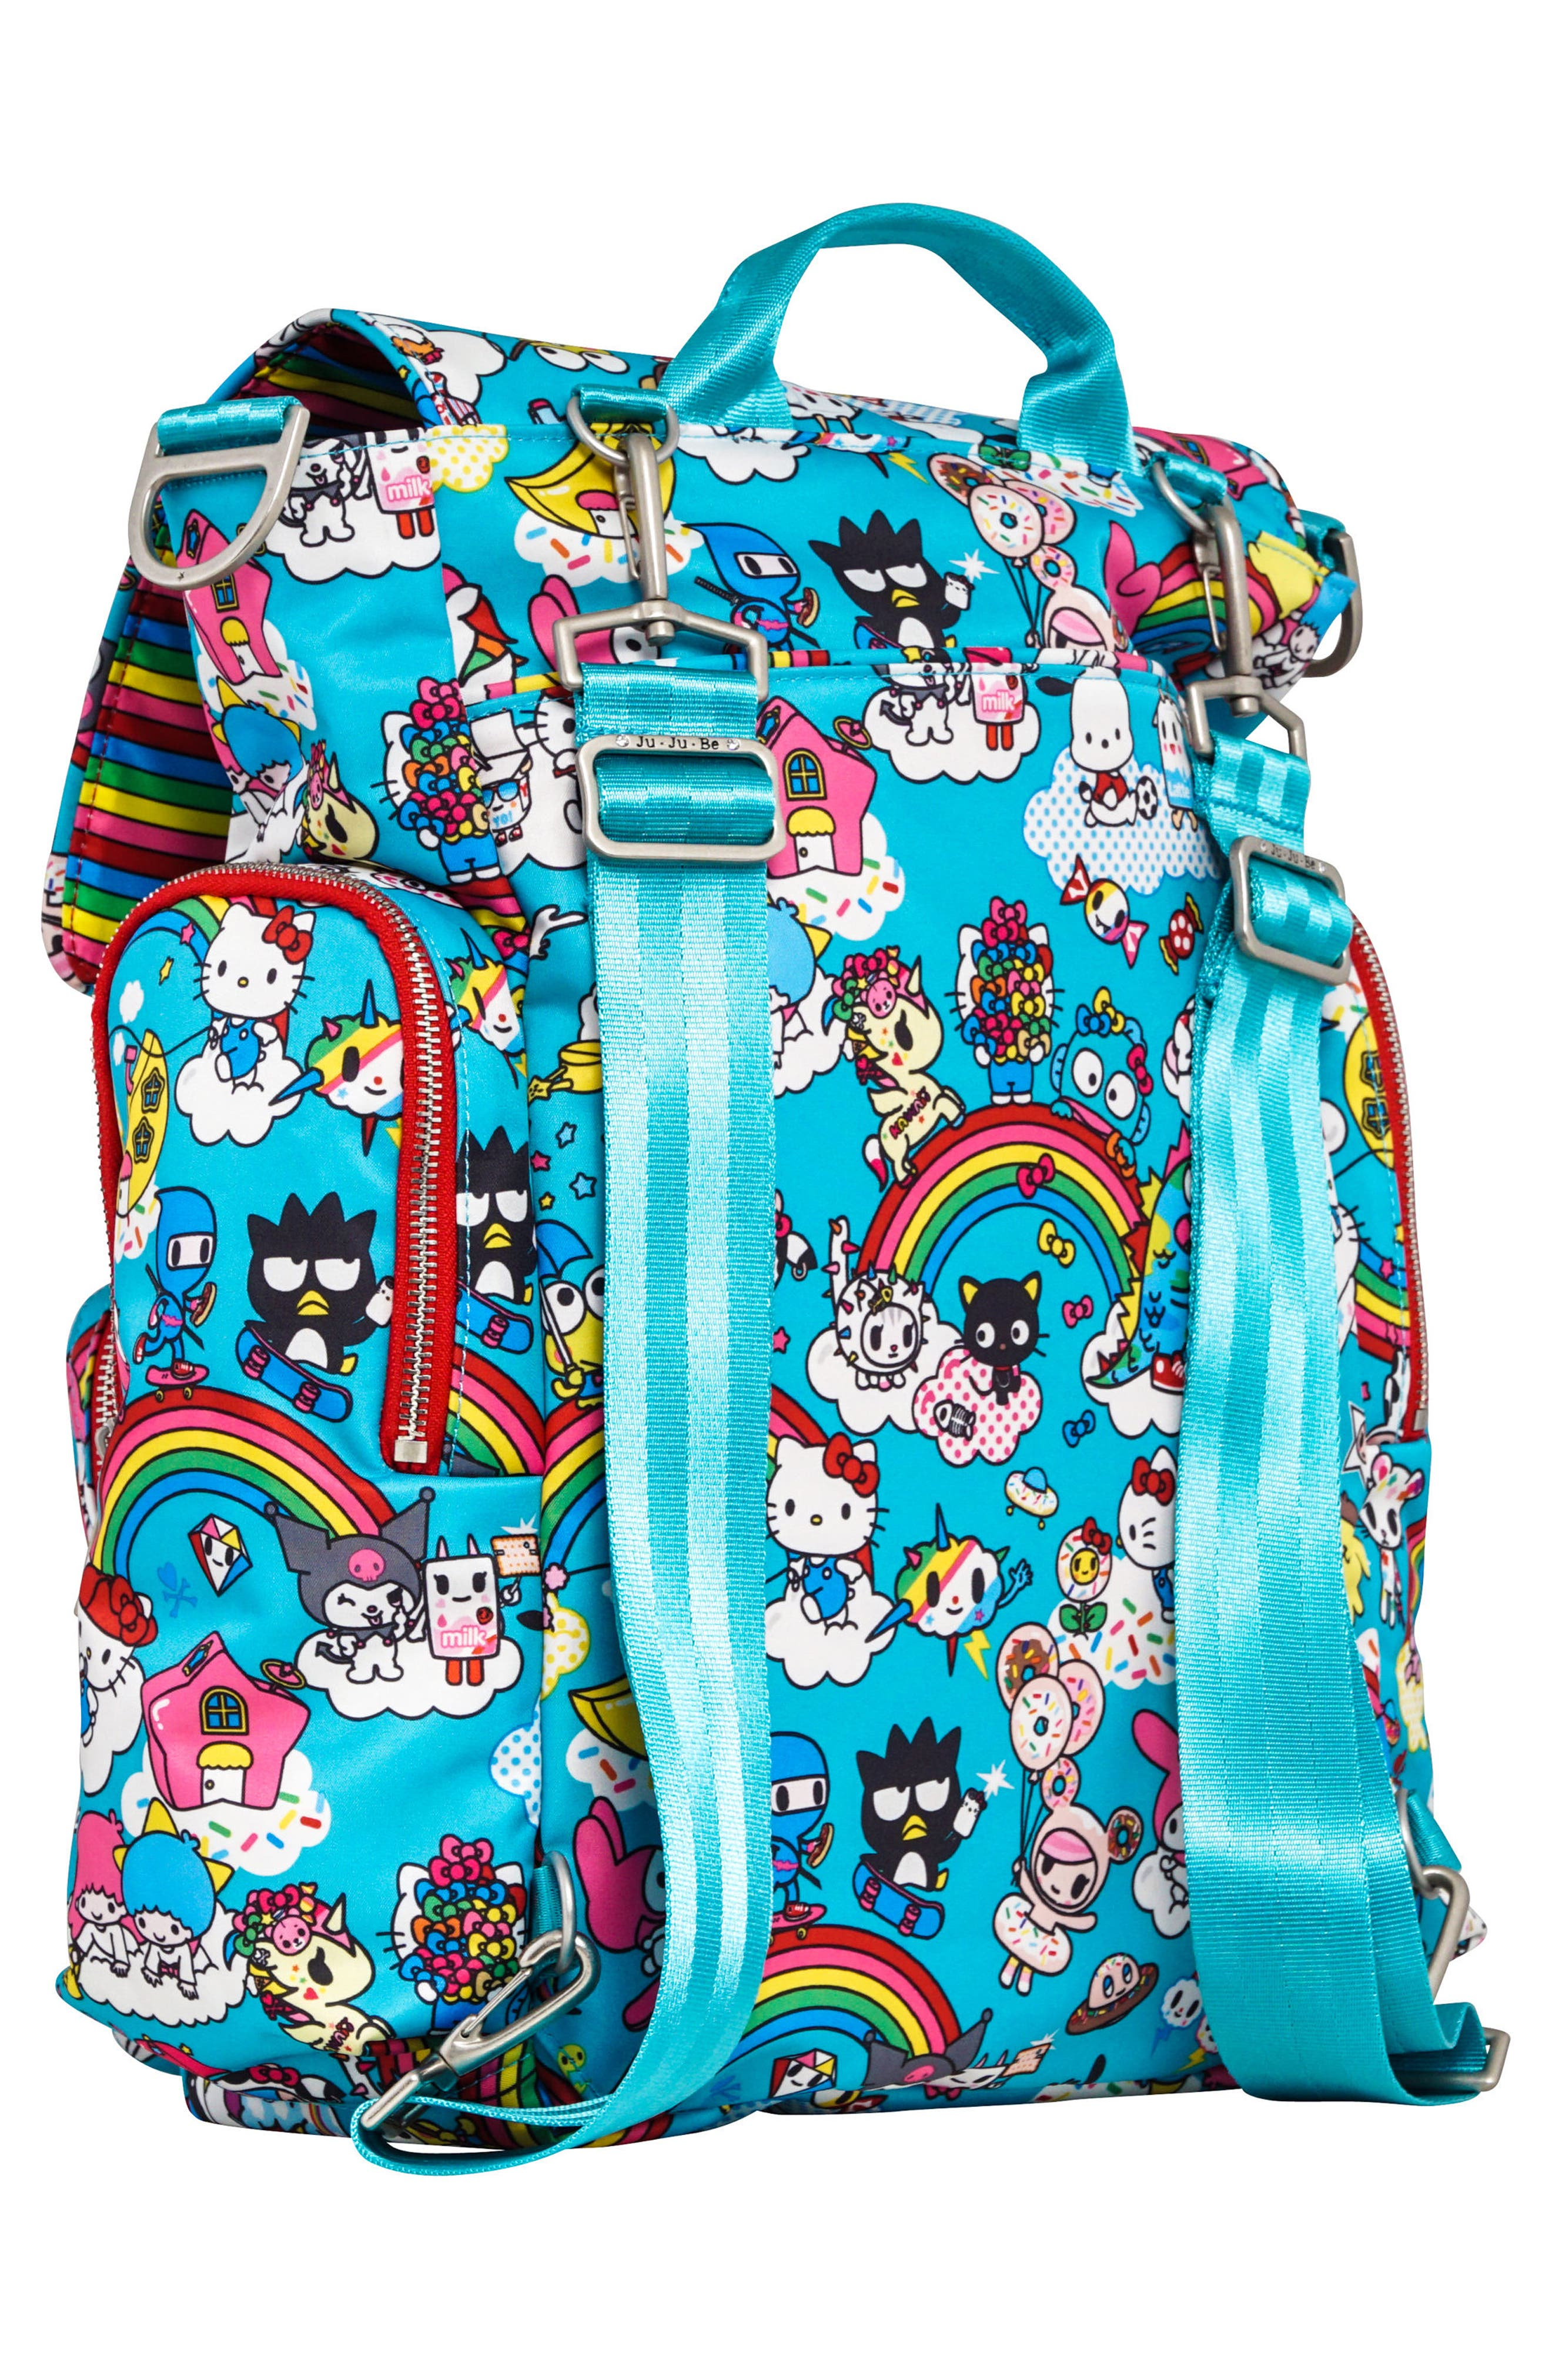 x tokidoki for Hello Sanrio Rainbow Dreams Sporty Diaper Backpack,                             Alternate thumbnail 2, color,                             433